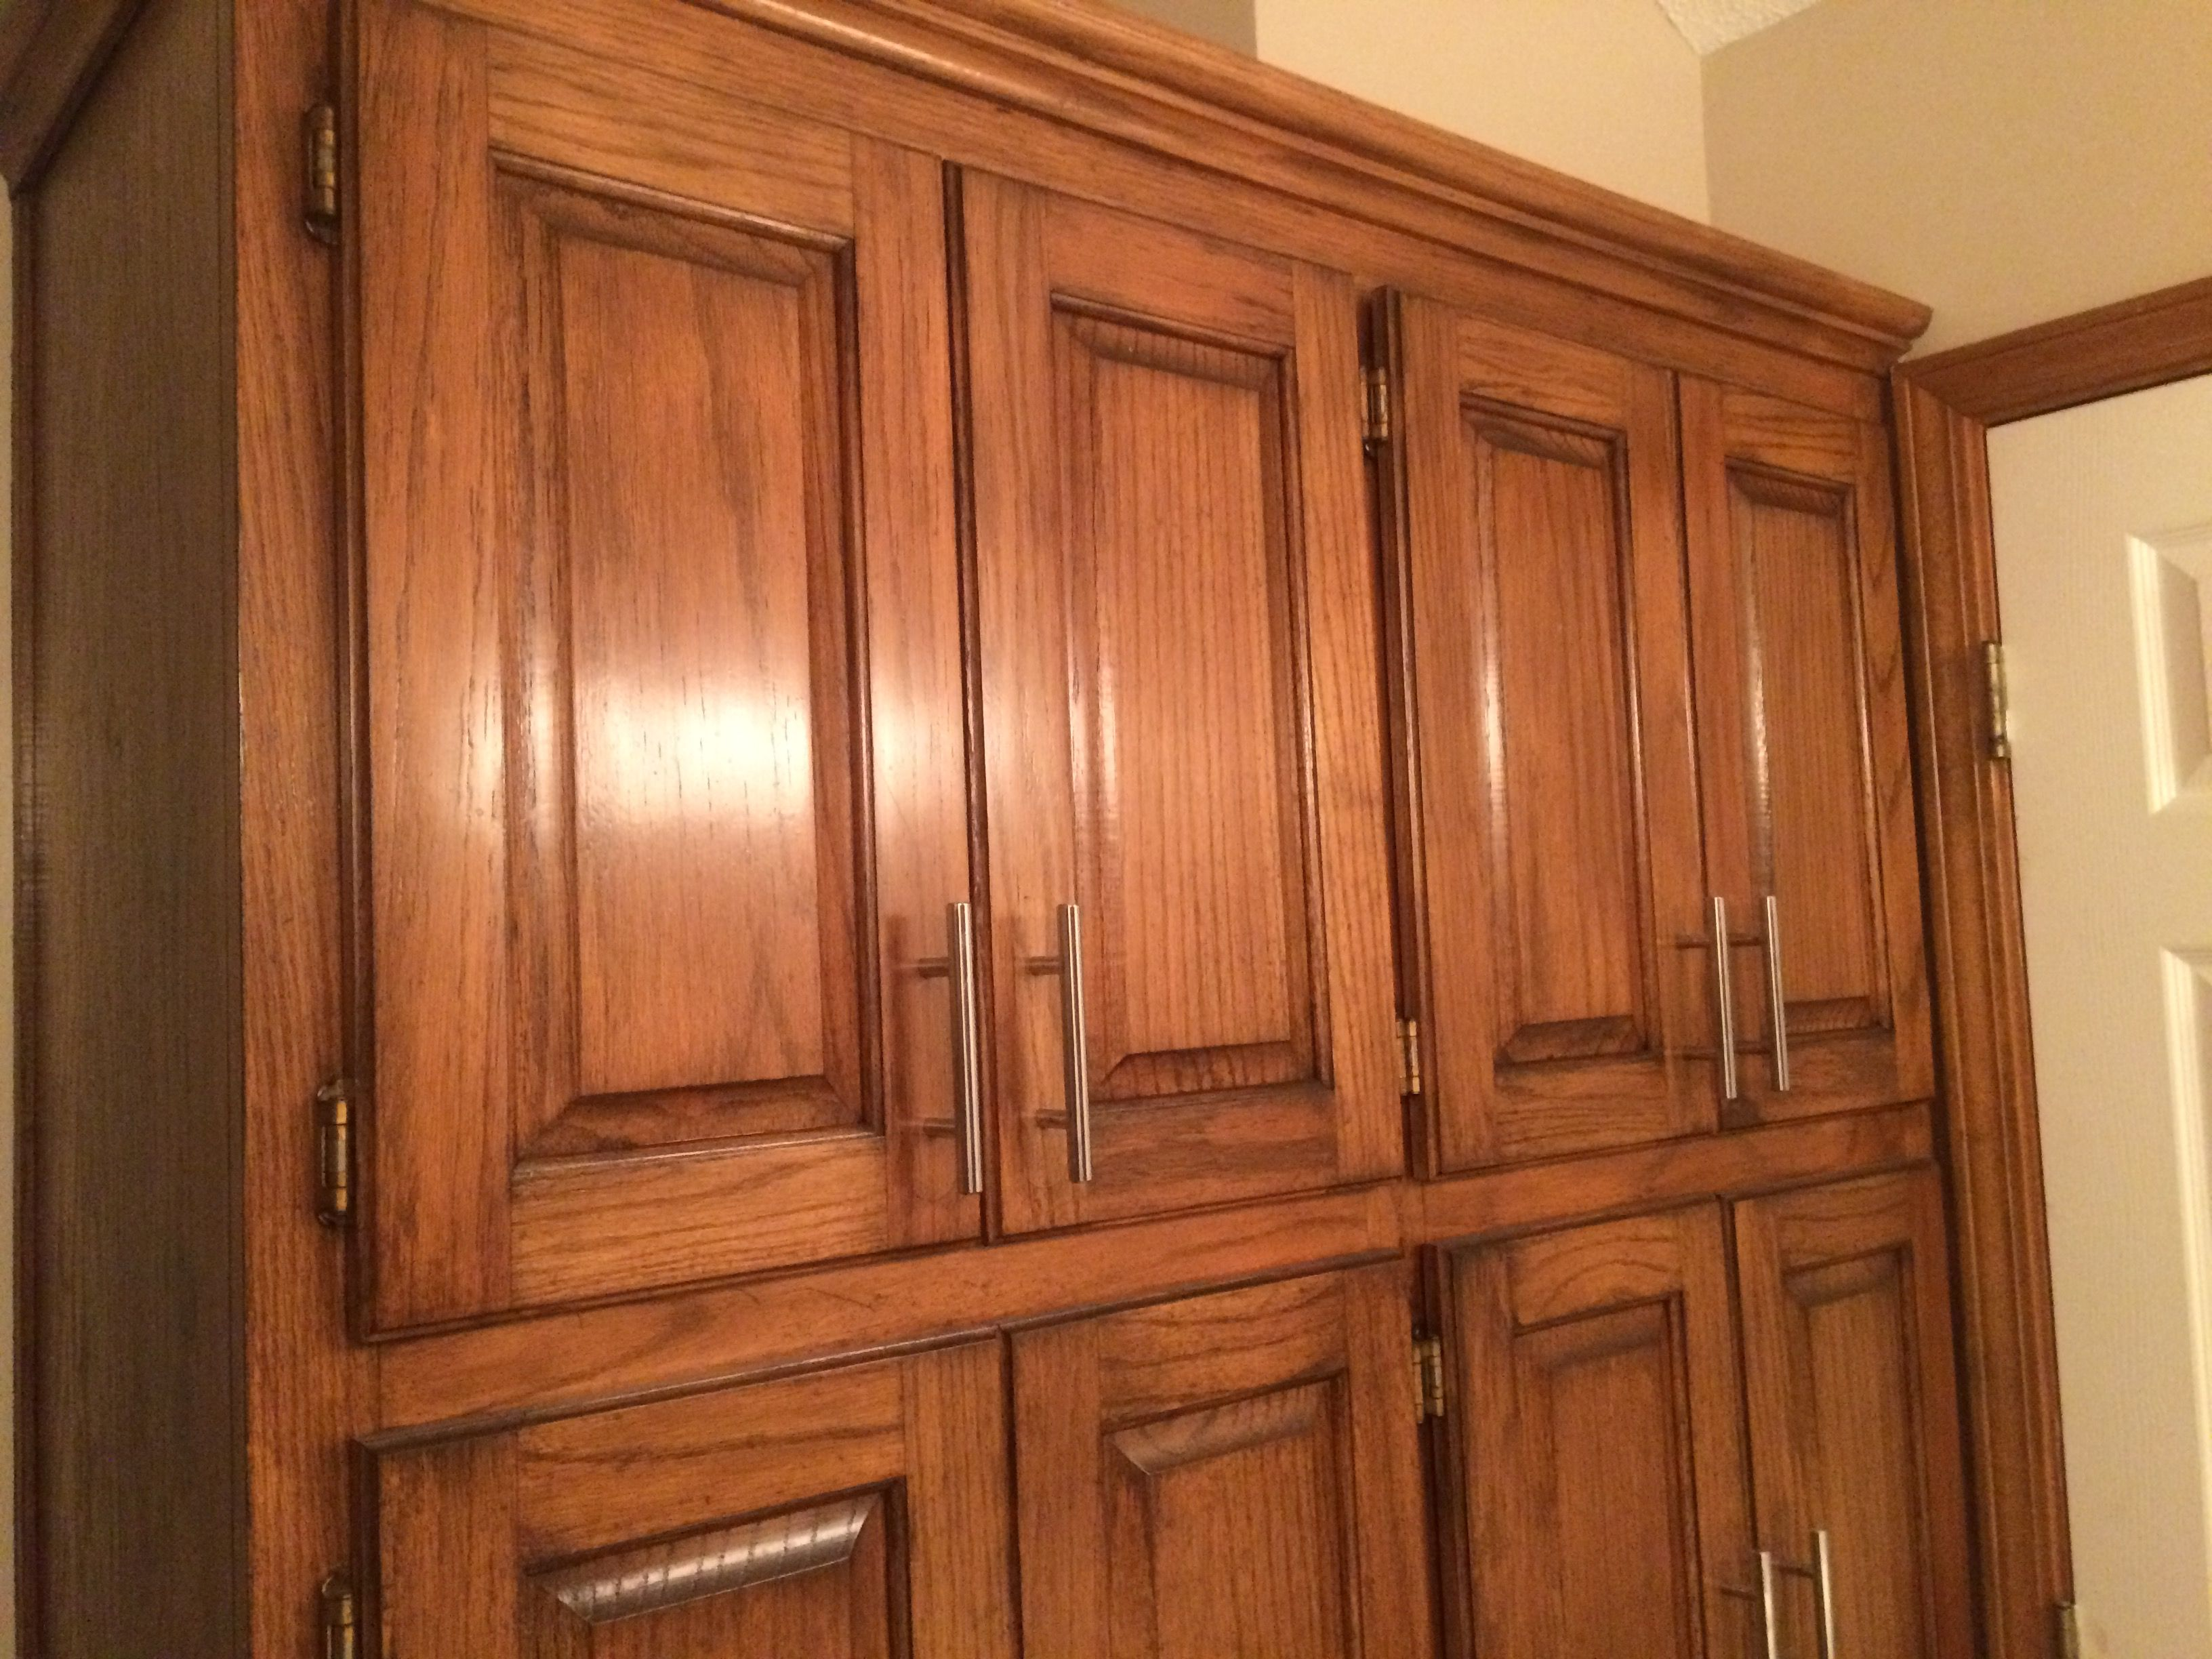 Golden Oak Cabinets Enhanced With Mahogany Gel Stain Stained Kitchen Cabinets Oak Cabinets Staining Cabinets